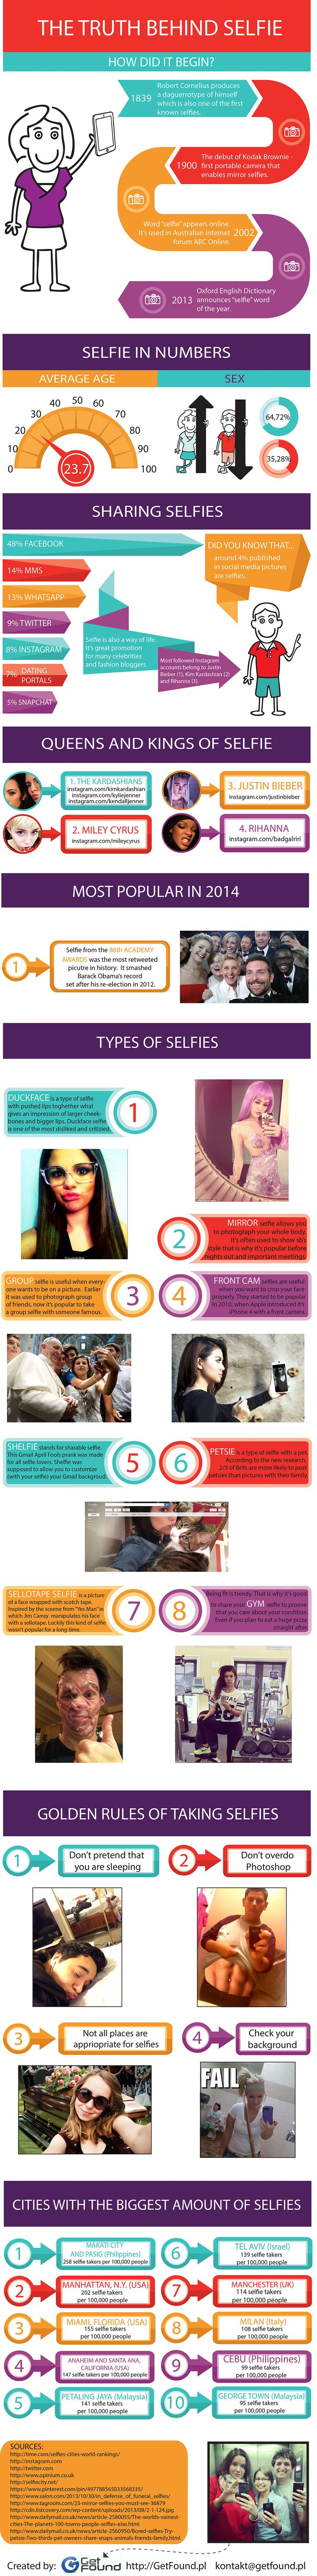 Infographic about selfie. You will find information such as: what is the average age of a typical selfie-taker, who takes more selfies – boys or girls, where and how do we share them an what are the types of selfies?